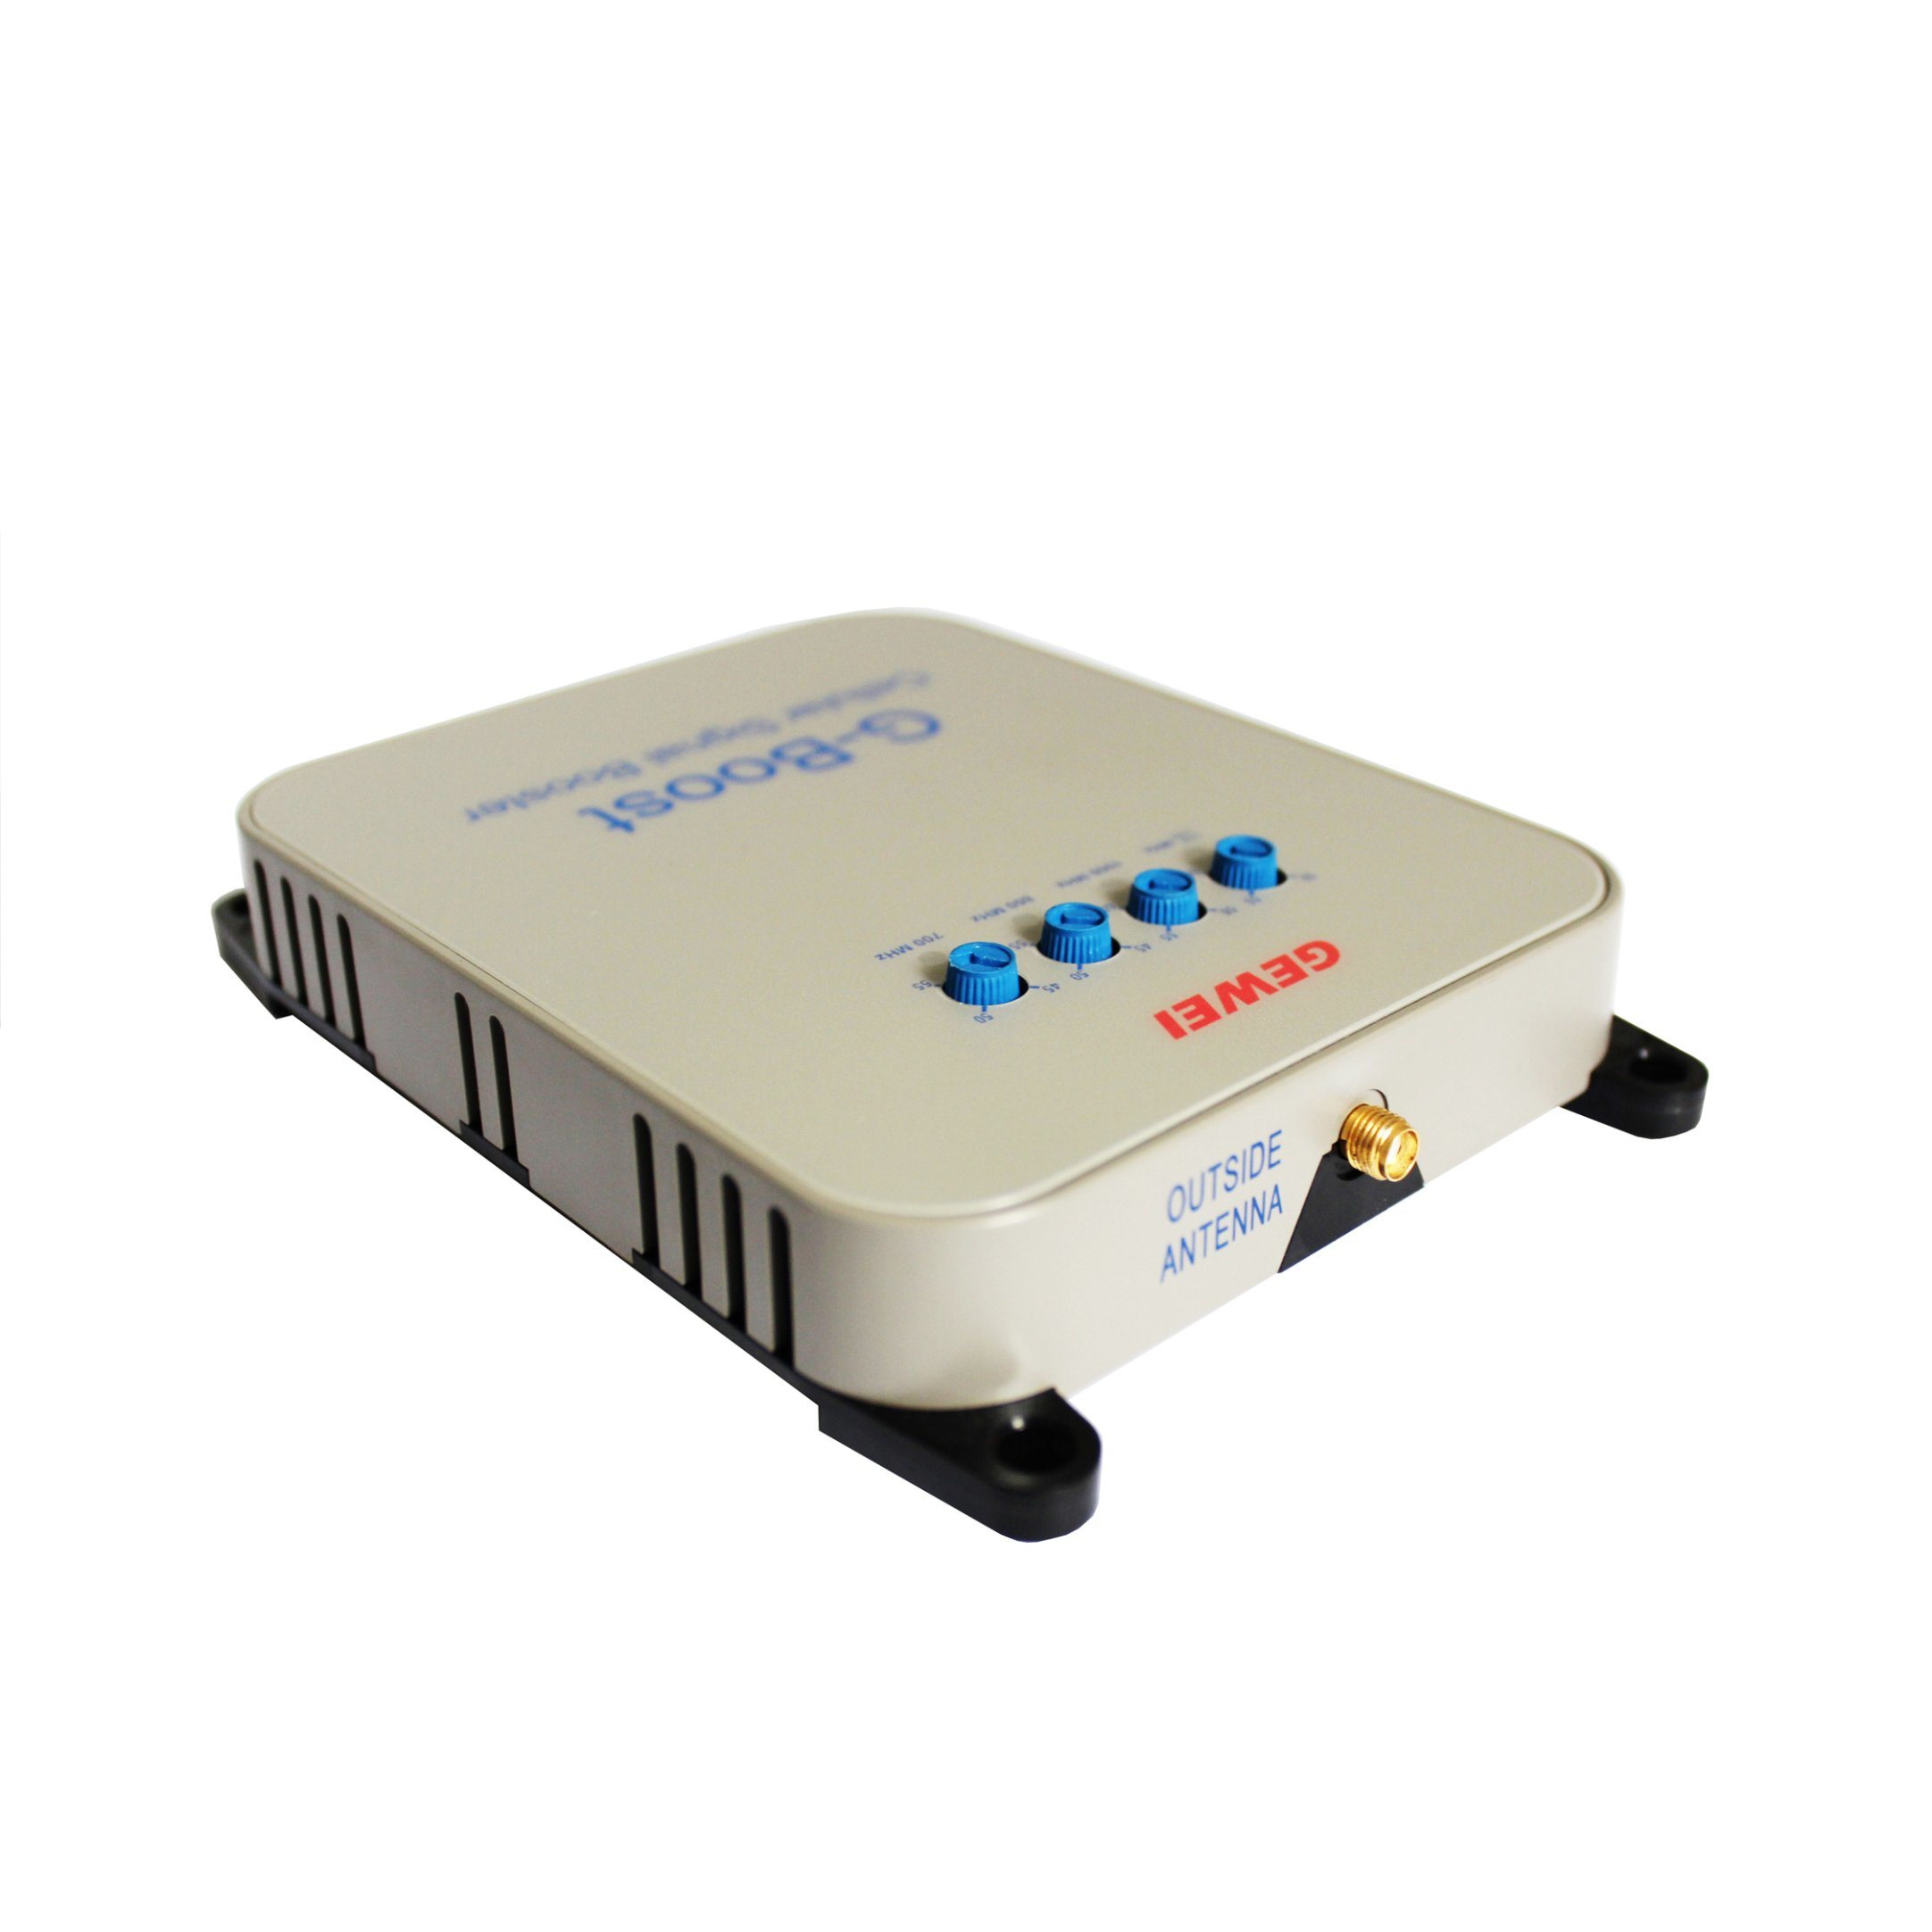 700/850/1900/2100MHz 5-Band Cellphone Signal Booster for All South&North America Carriers Signal Booster Mobile Signal Booster with FCC Certification